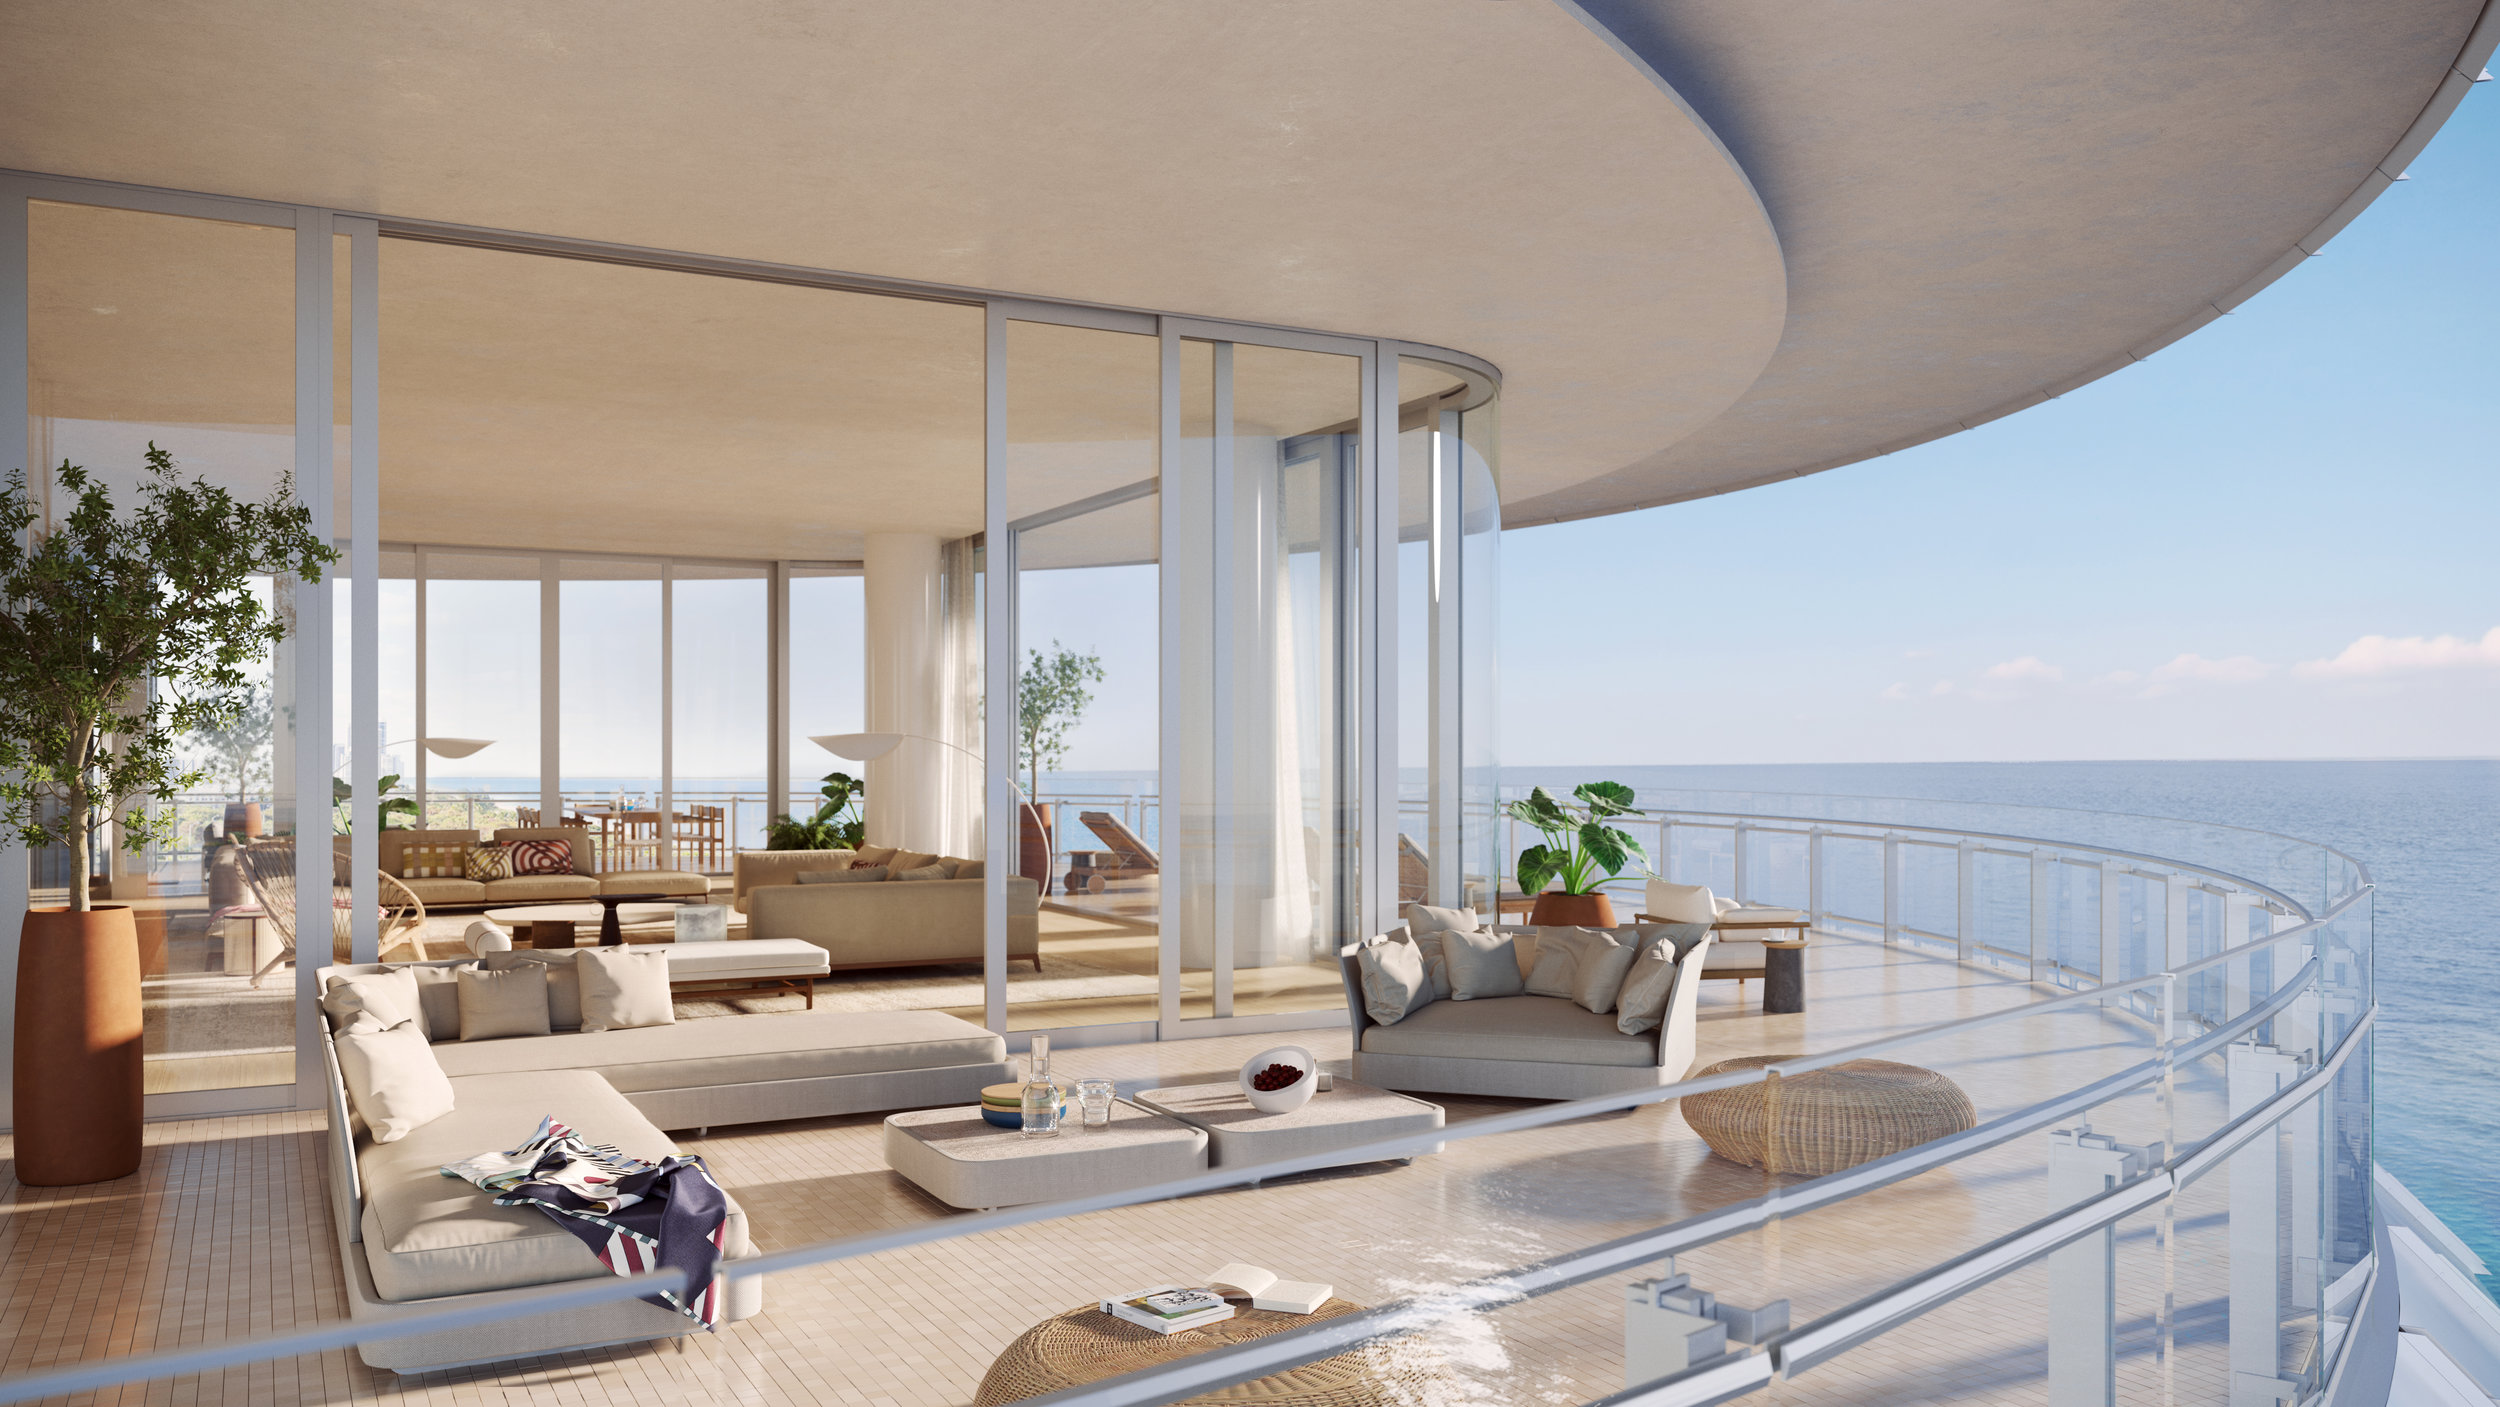 Renzo Piano's Eighty Seven Park Reveals Record-Breaking $68 Million Penthouse